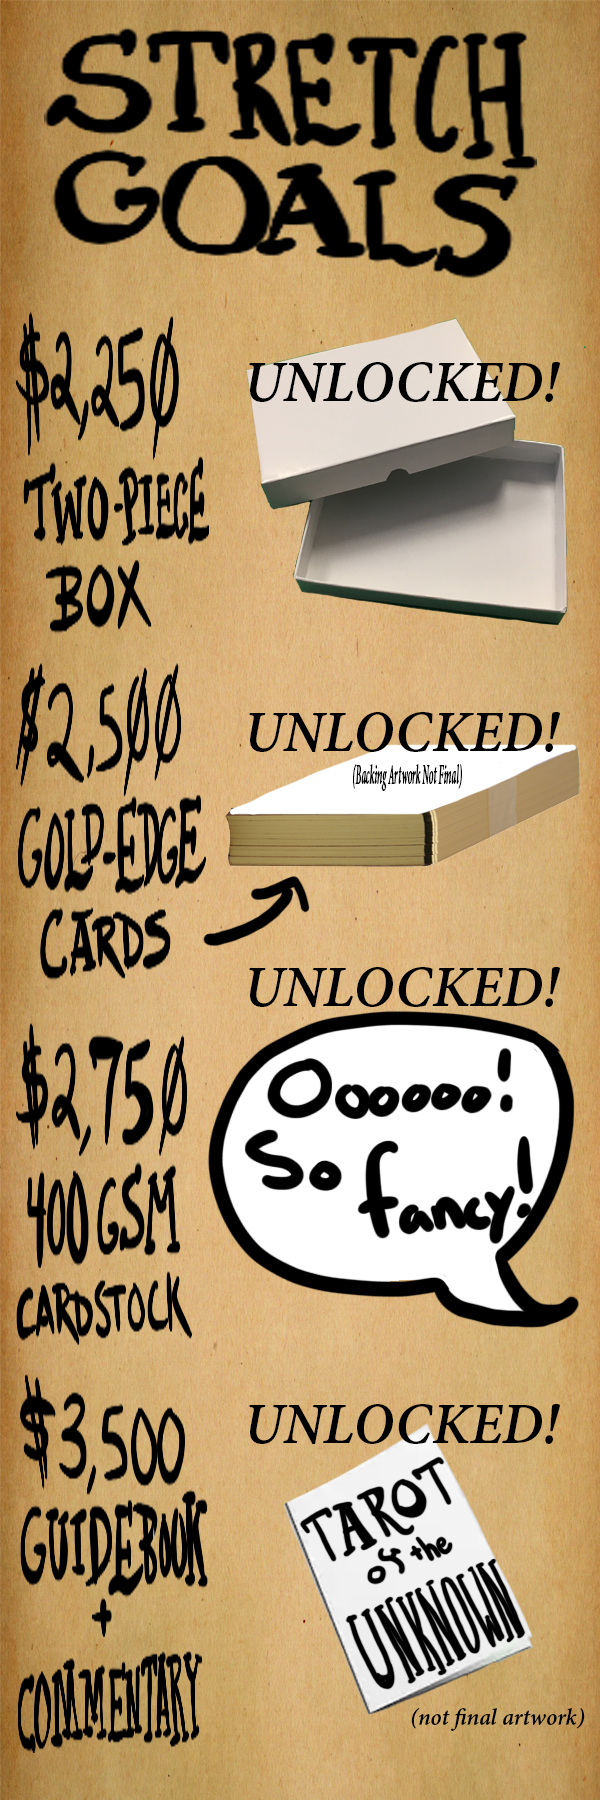 EVERYTHING IS UNLOCKED! Look for NEW GOALS SOON!